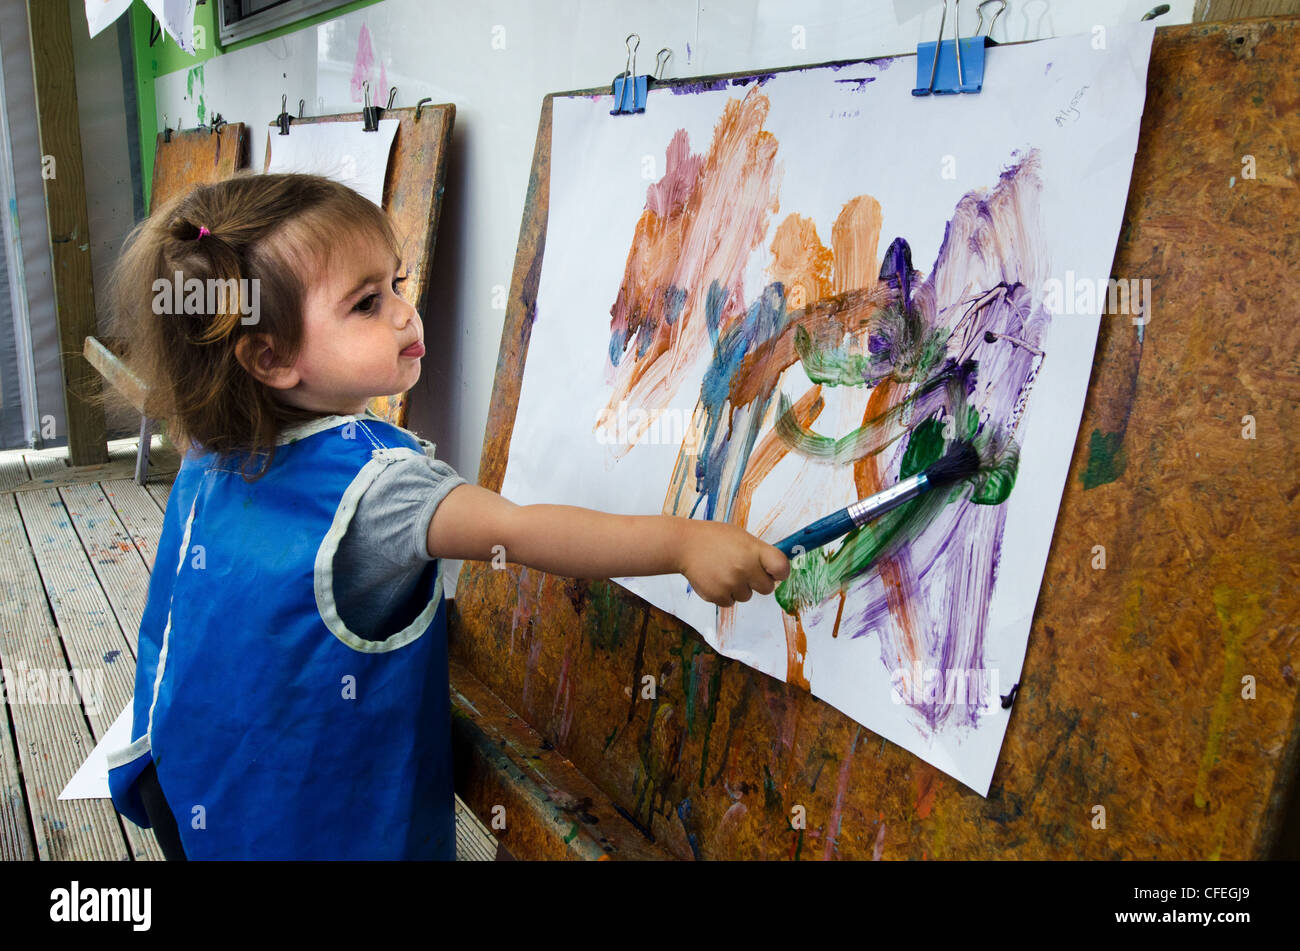 Adorable little girl sticks her tounge out while concentrating on painting a picture at a preschool centre - Stock Image